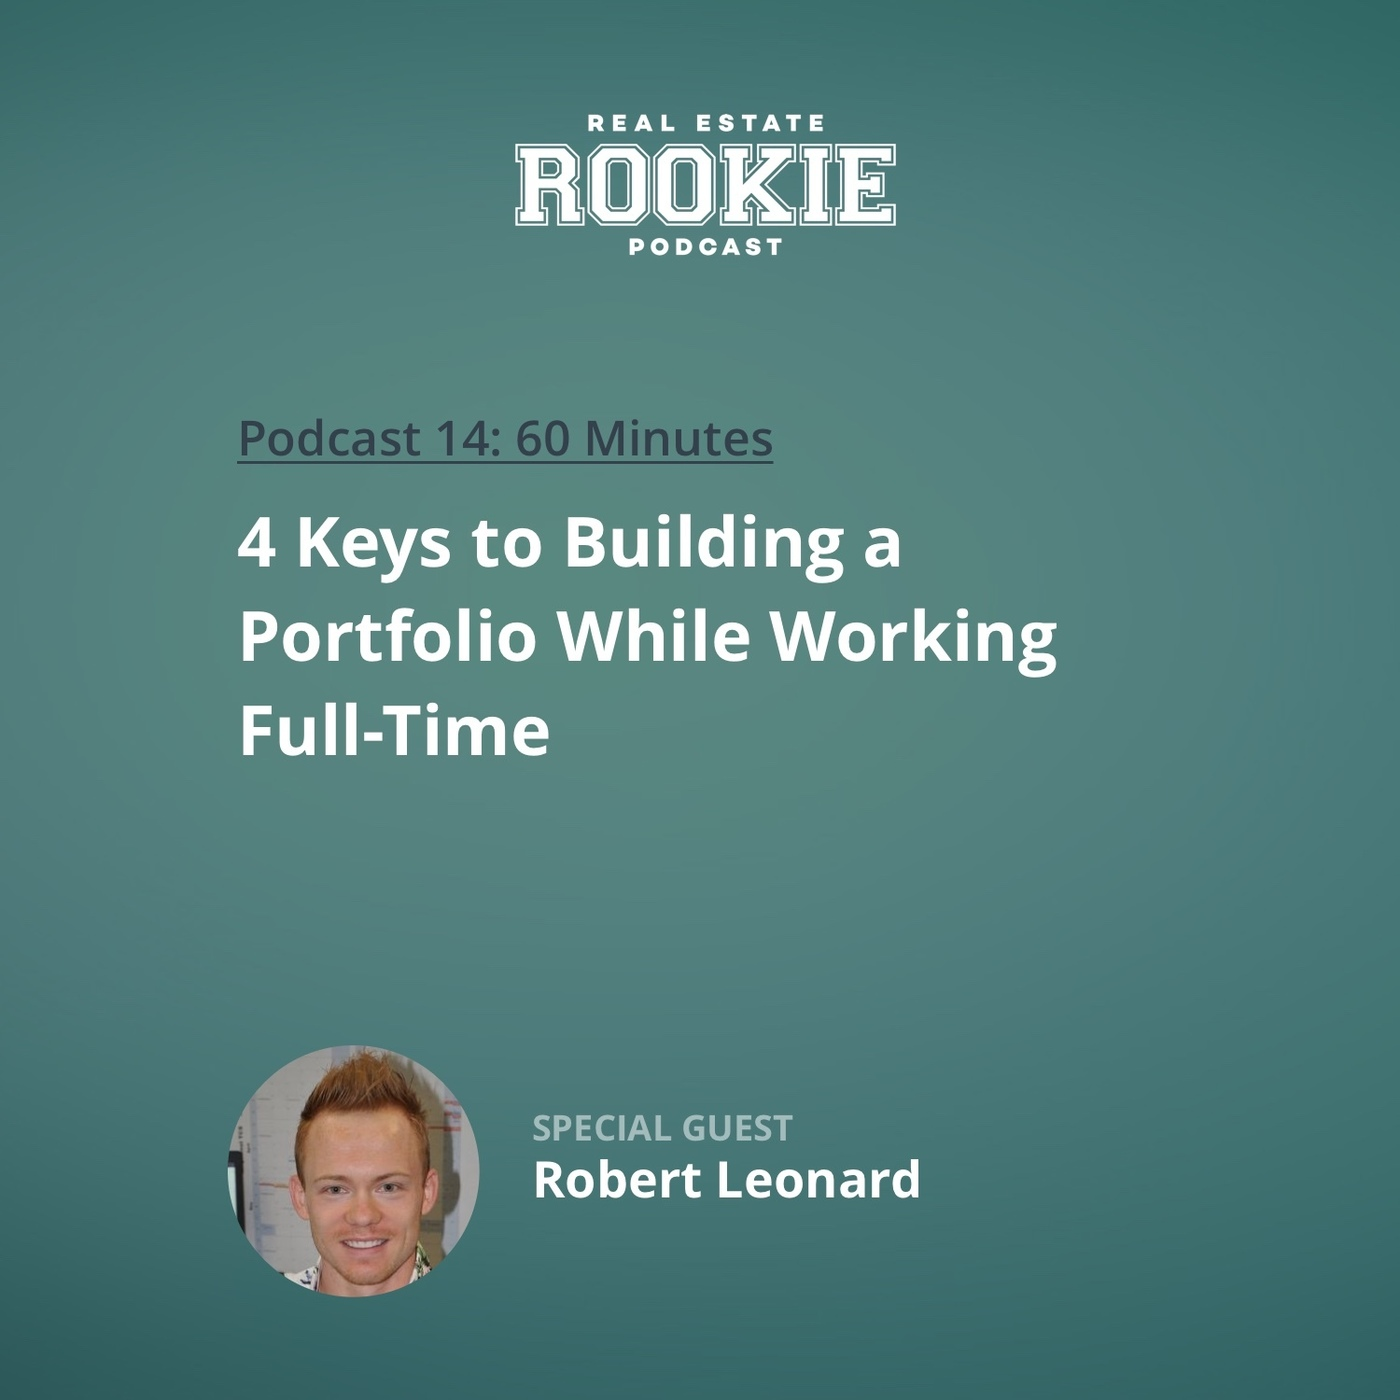 4 Keys to Building a Portfolio While Working Full-Time With Robert Leonard